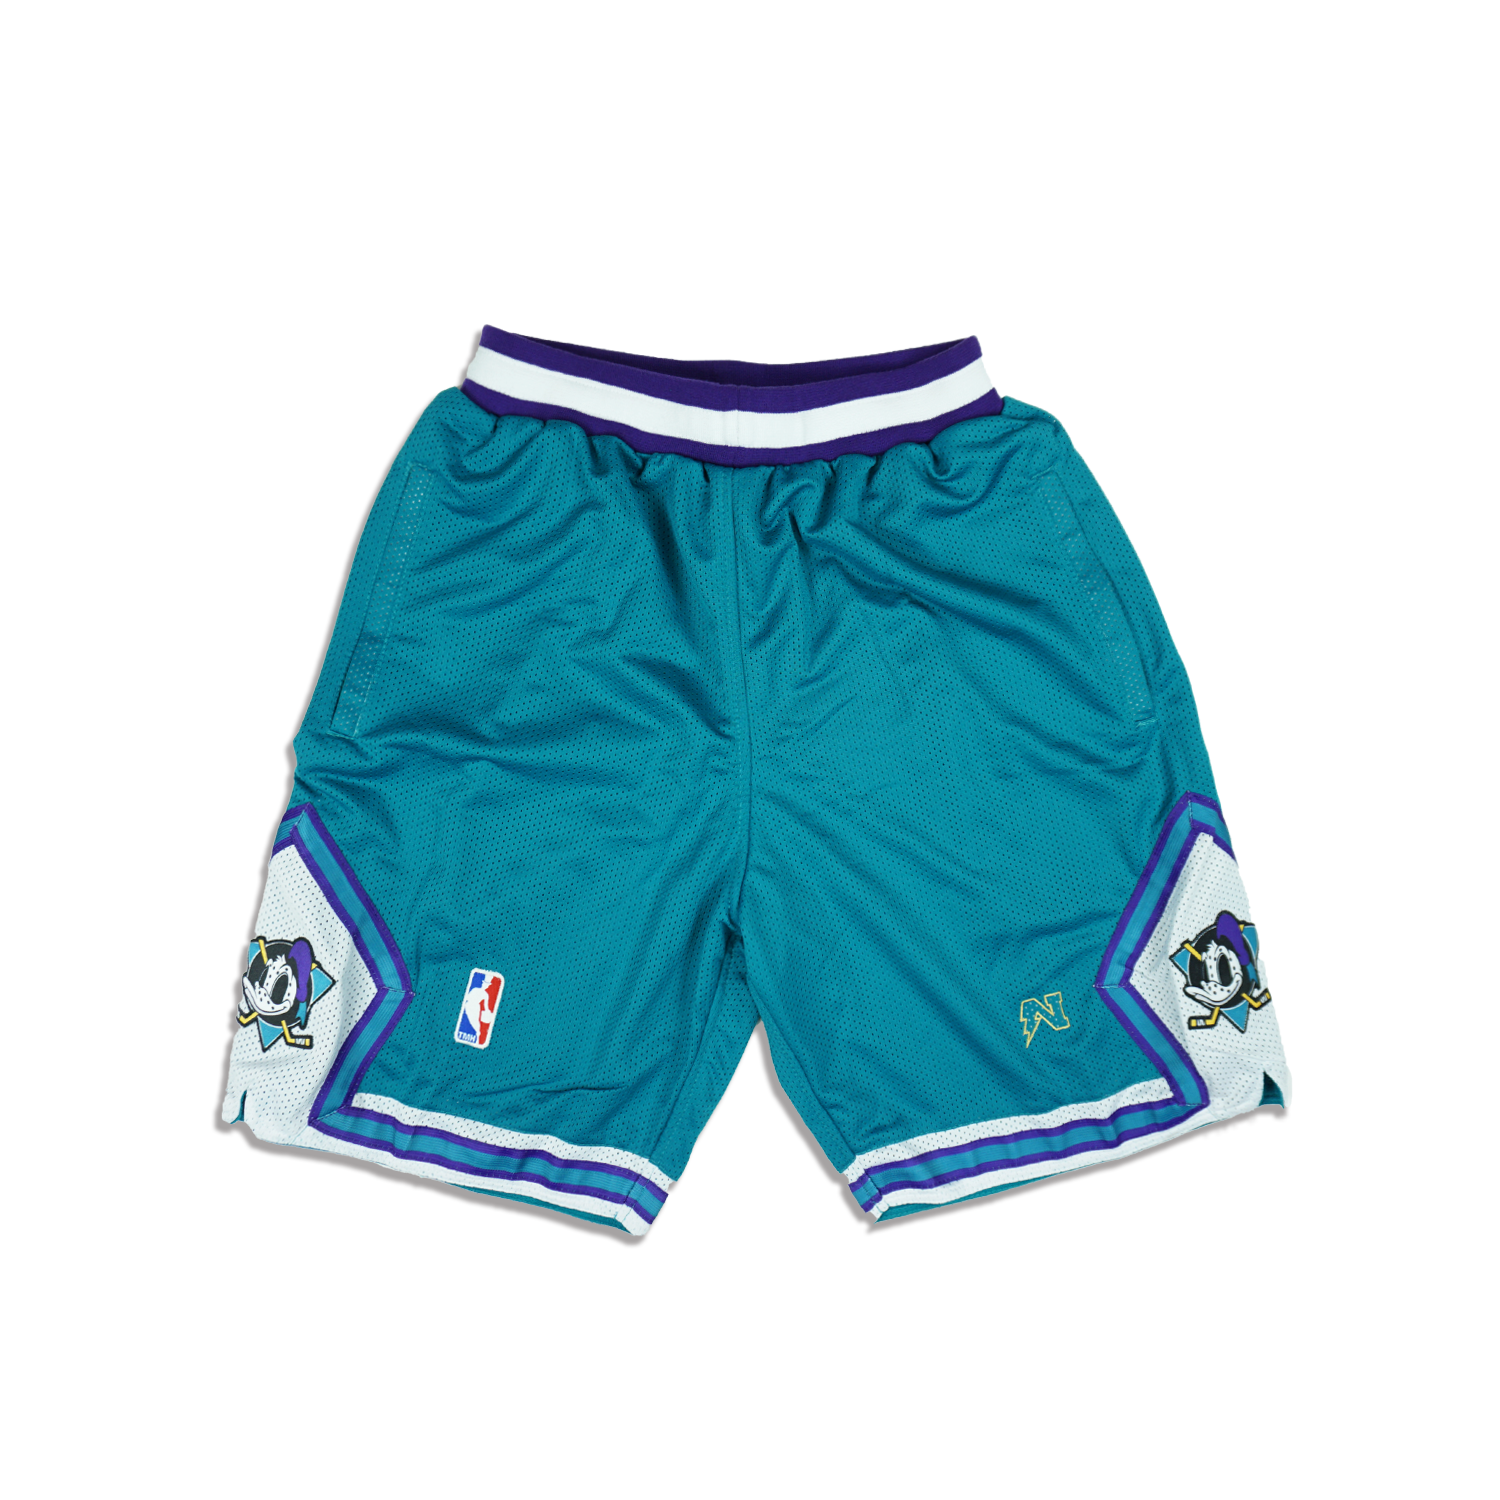 Mighty Donald  Basketball Shorts - Teal